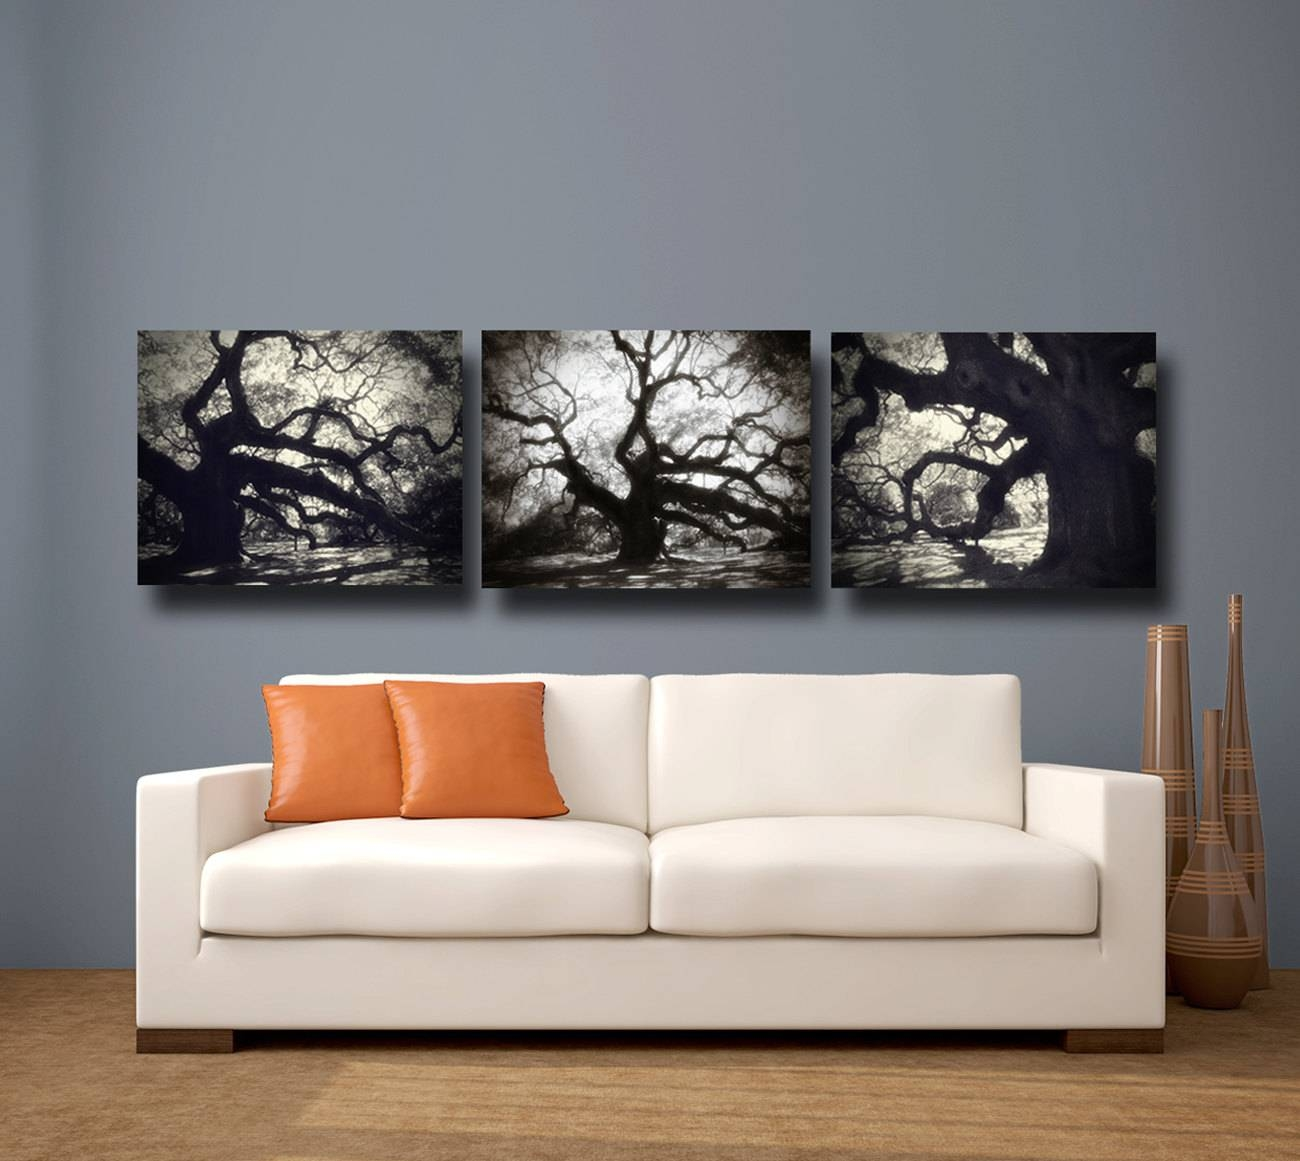 Wall Art Designs: Canvas Wall Art Leather Material Black White Intended For 2017 Big Cheap Wall Art (View 19 of 20)